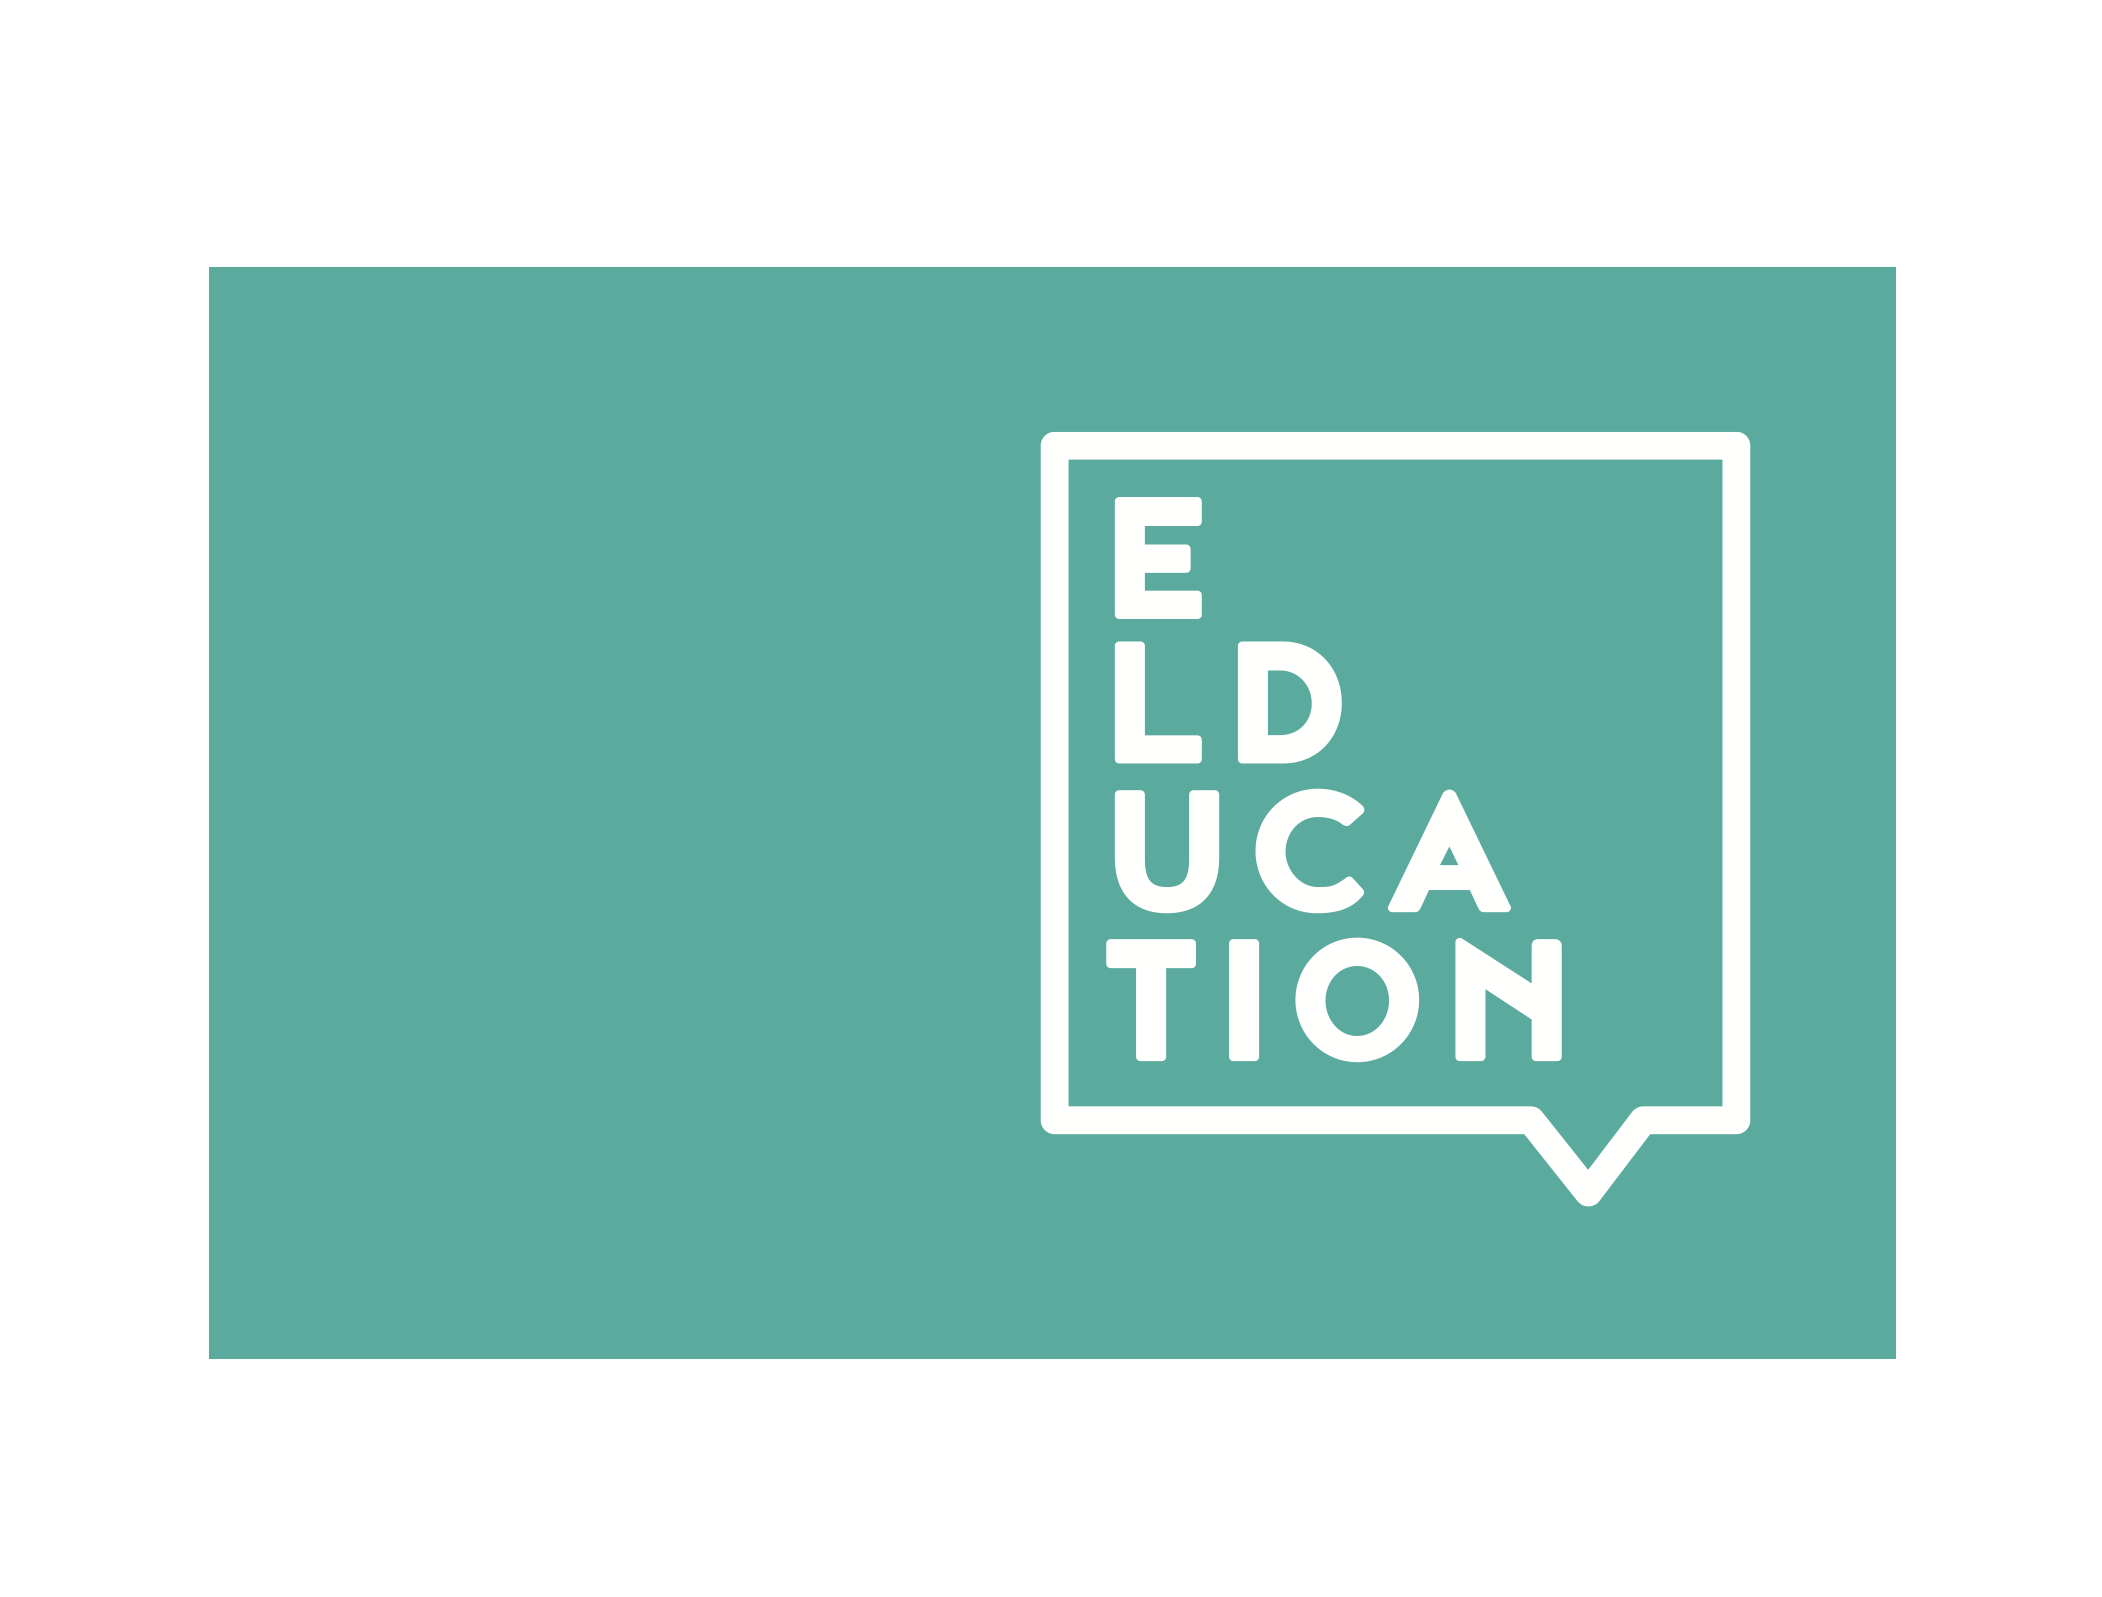 ELDucationlogo